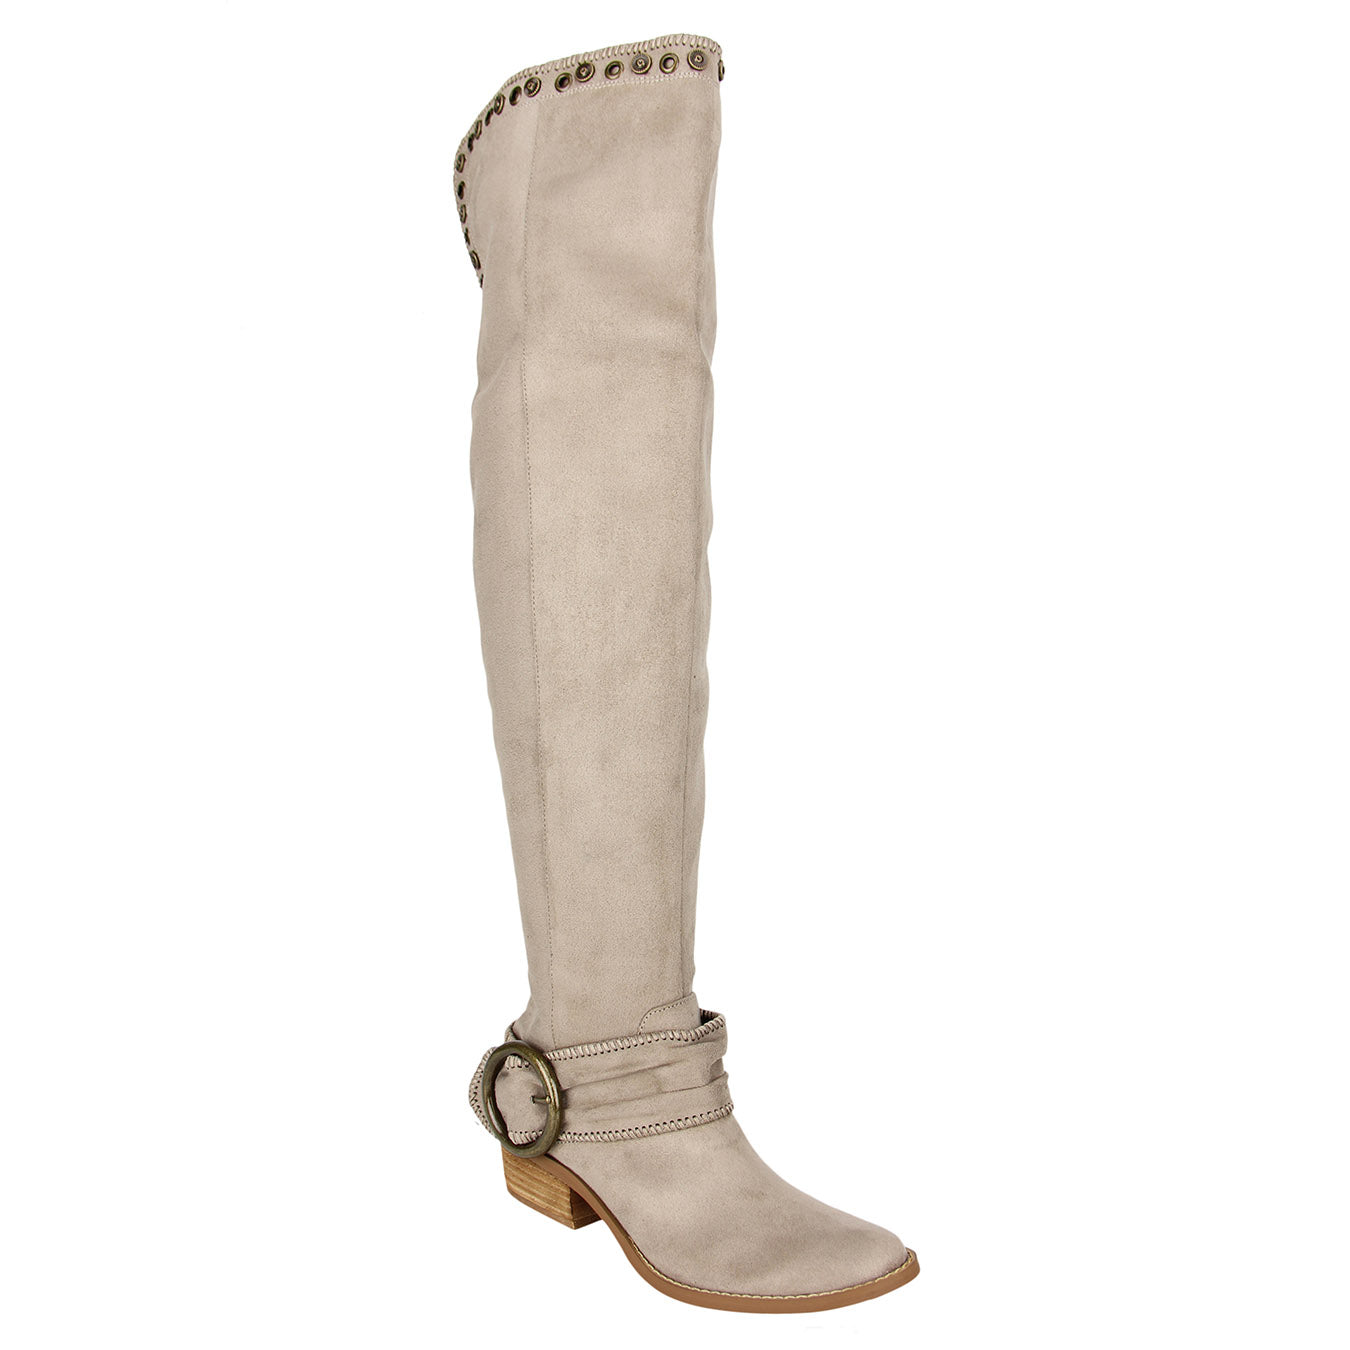 Not_Rated_women's_knee-high_boot_synthetic-suede_heel-1.5inches_taupe